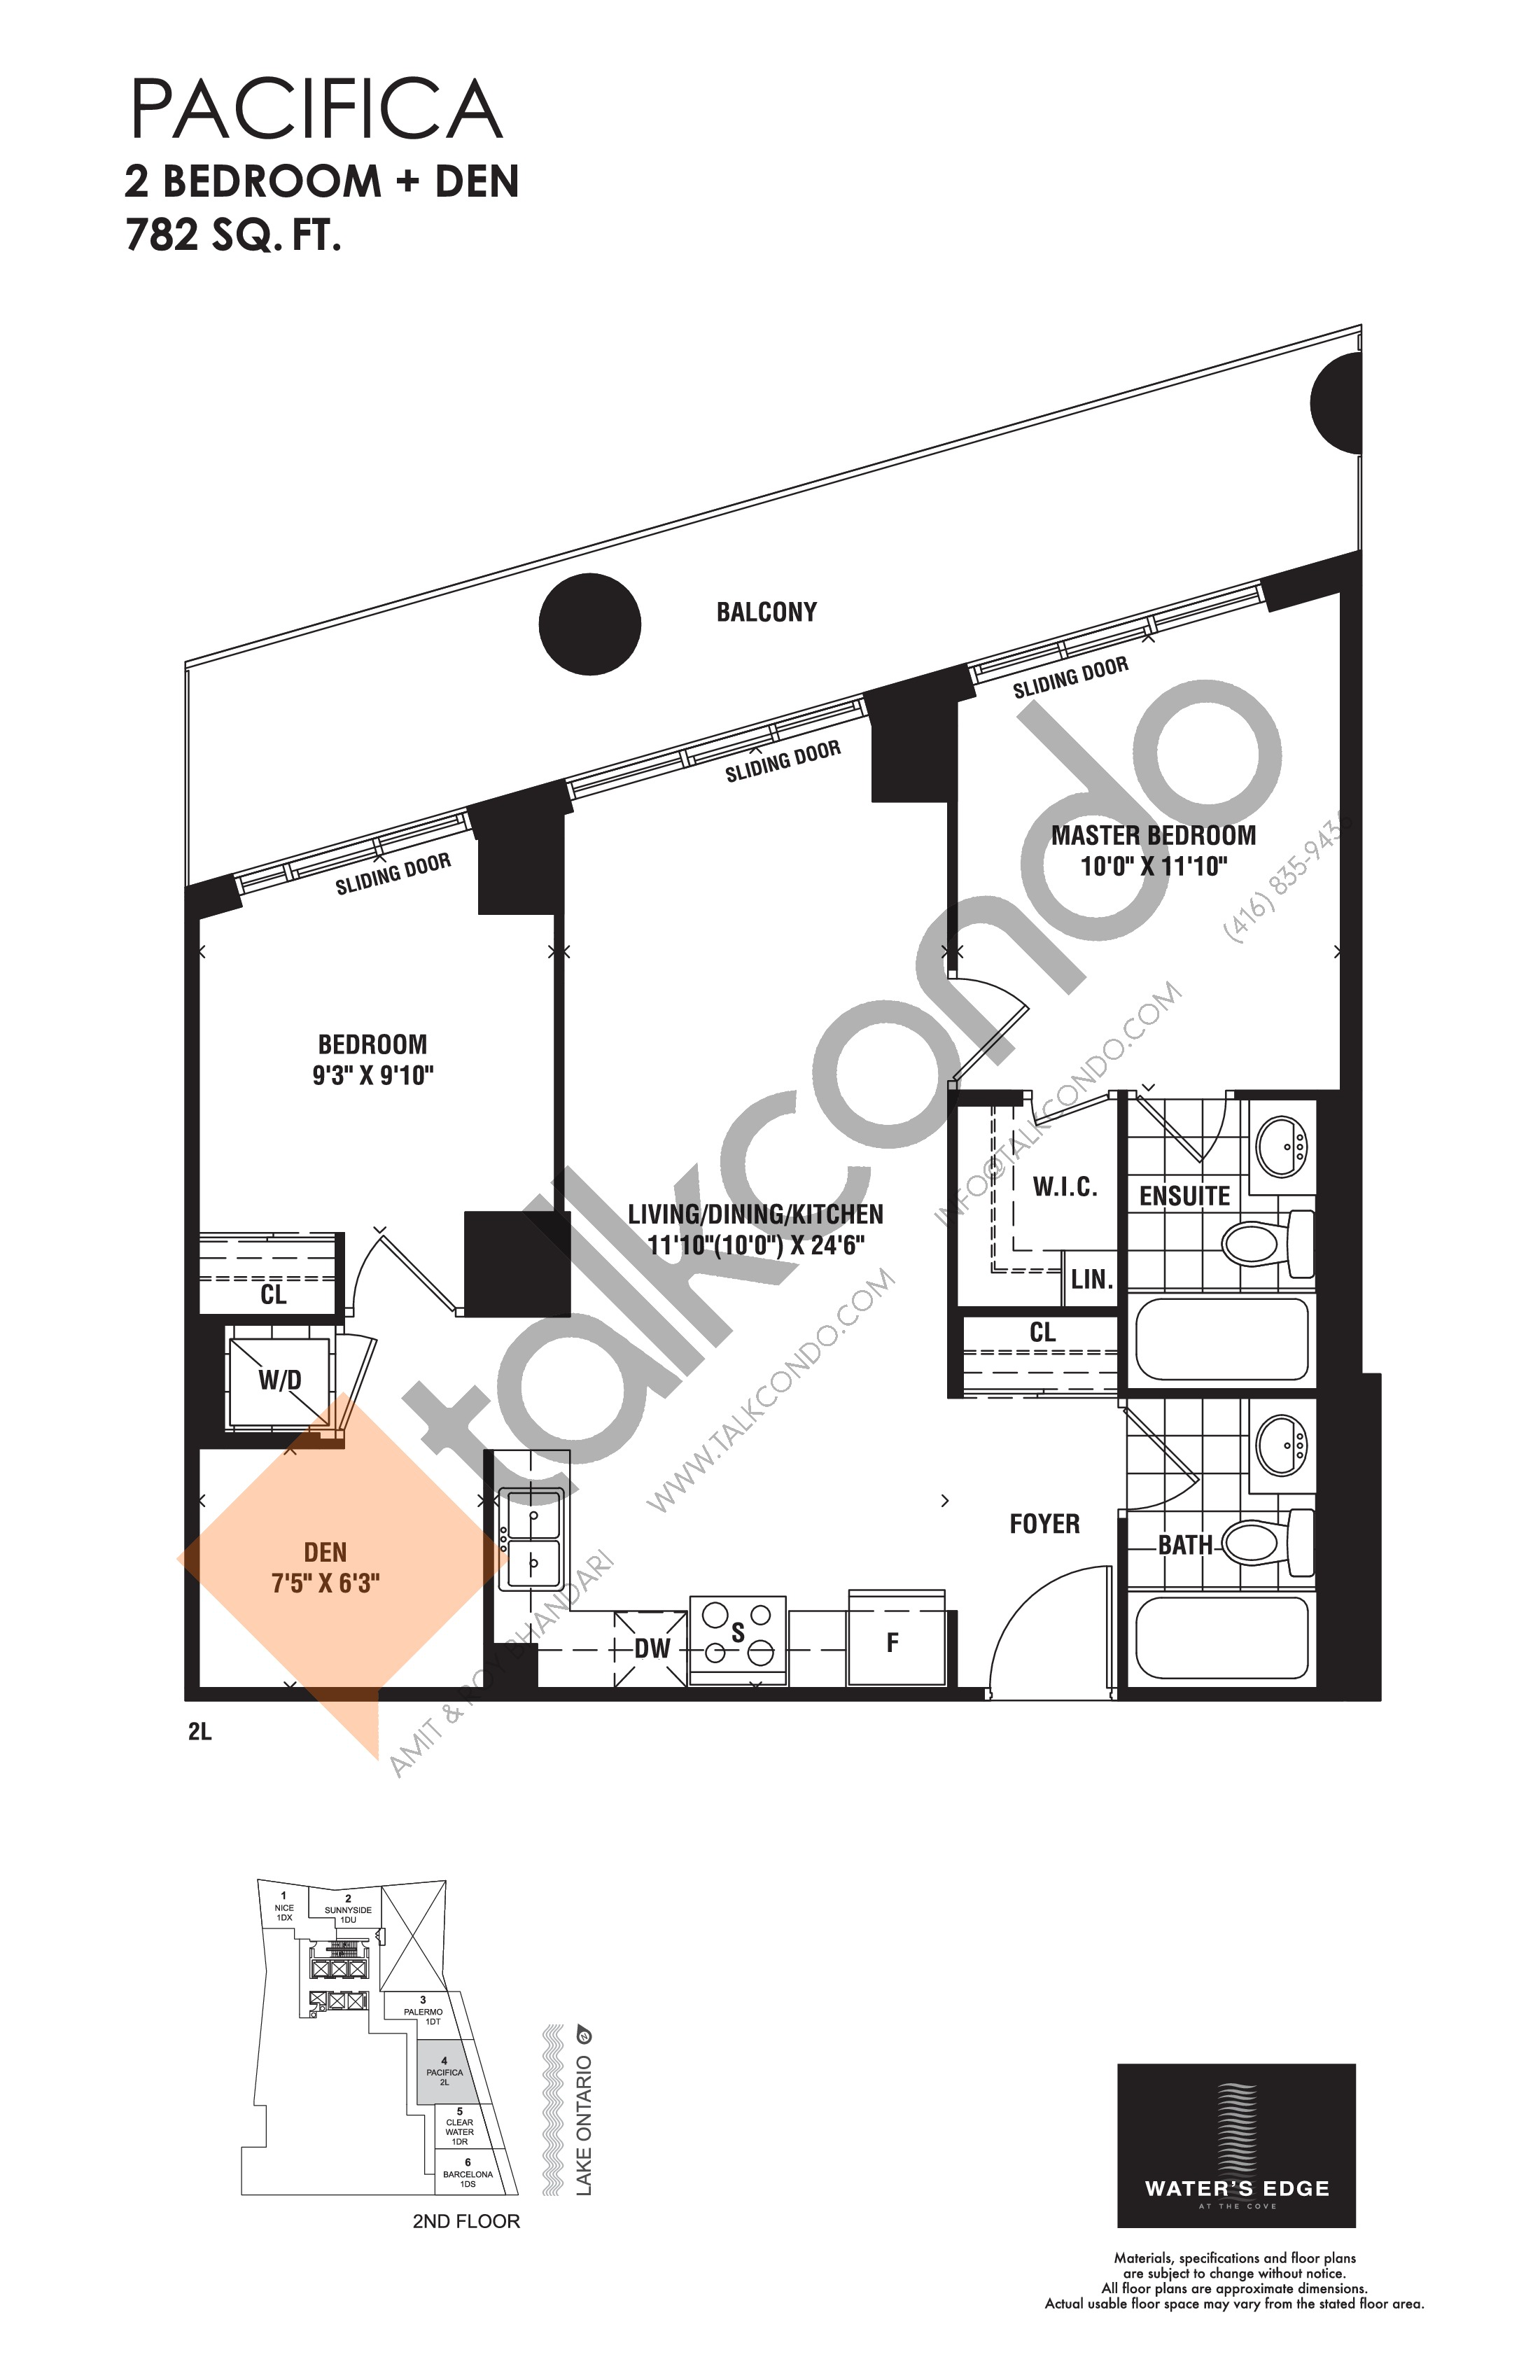 Pacifica Floor Plan at Water's Edge at the Cove Condos - 782 sq.ft